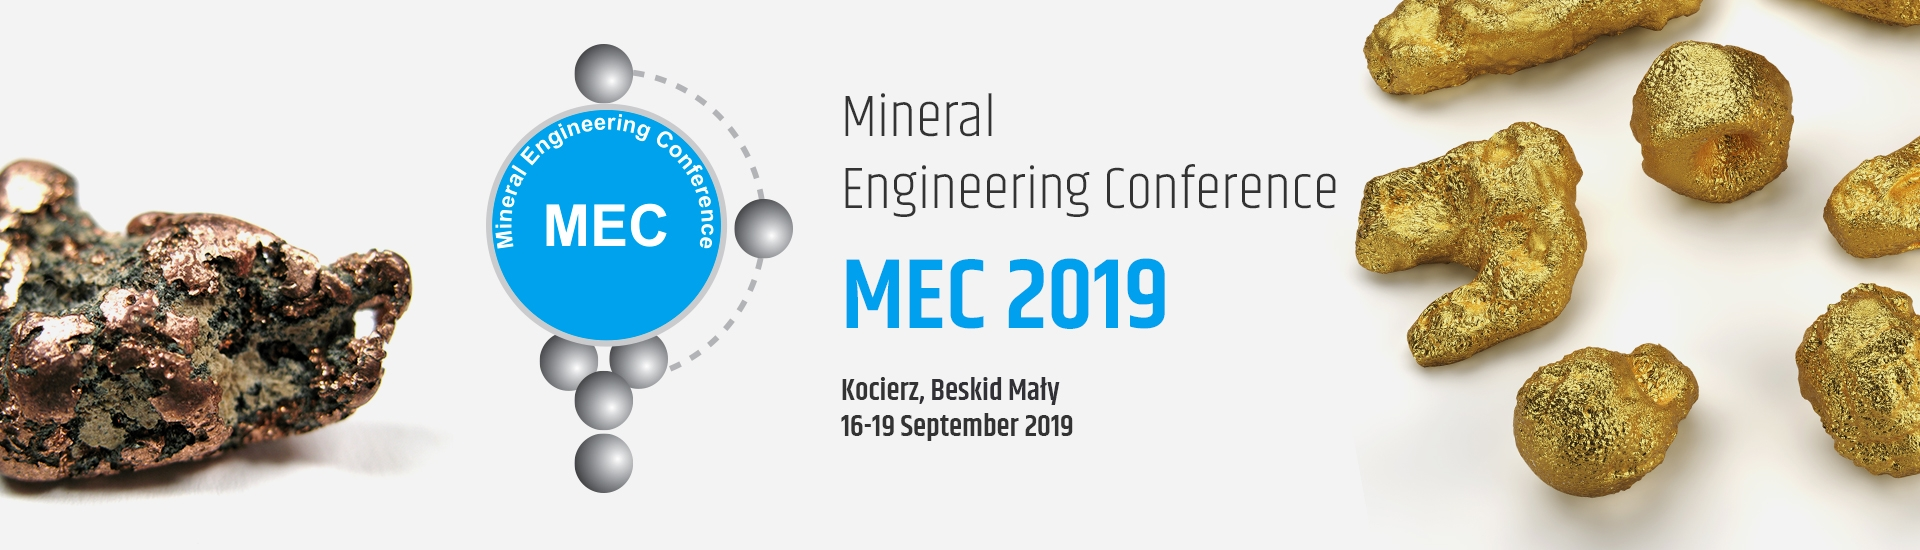 MEC2019 Minerals Engineering Conference – Kocierz, Beskid Mały, 16-19 September 2019